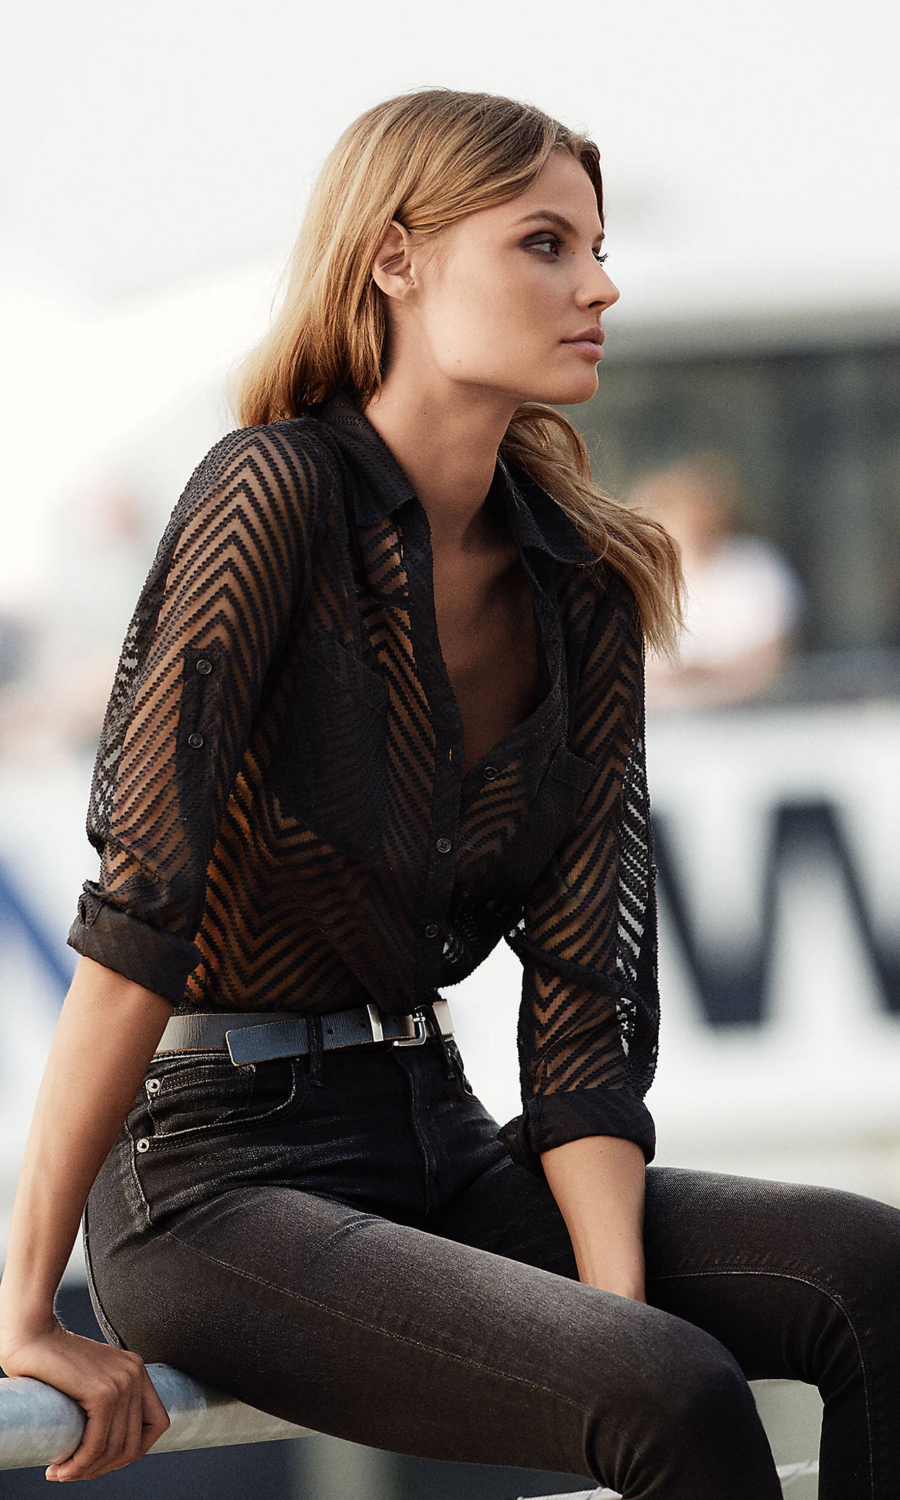 Sheer Stripes - Tackling Sheer Style Trends For Spring and Summer // Notjessfashion.com